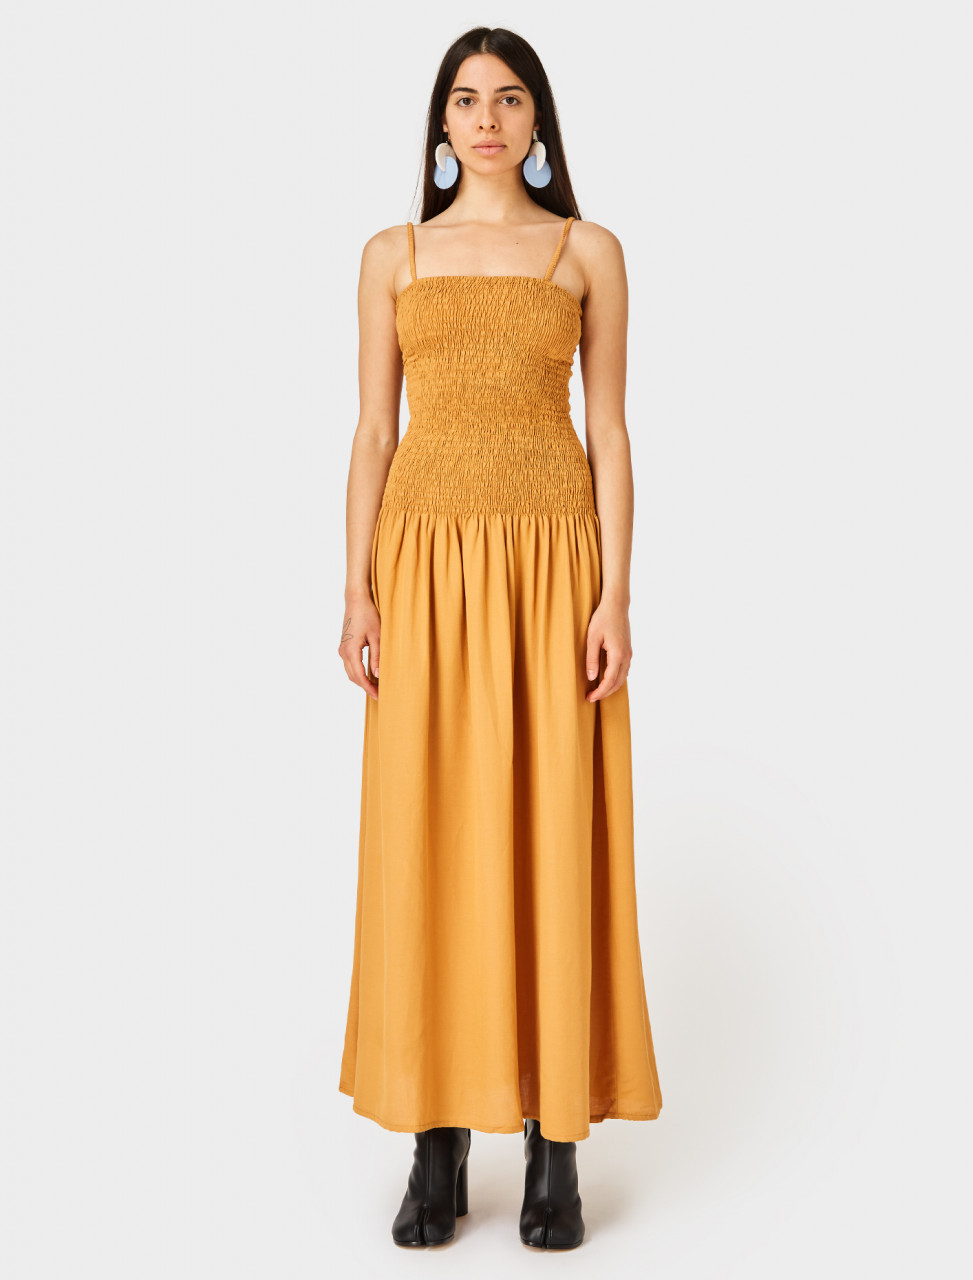 Front view of Paloma Wool Benidorm Maxi Dress in Nude